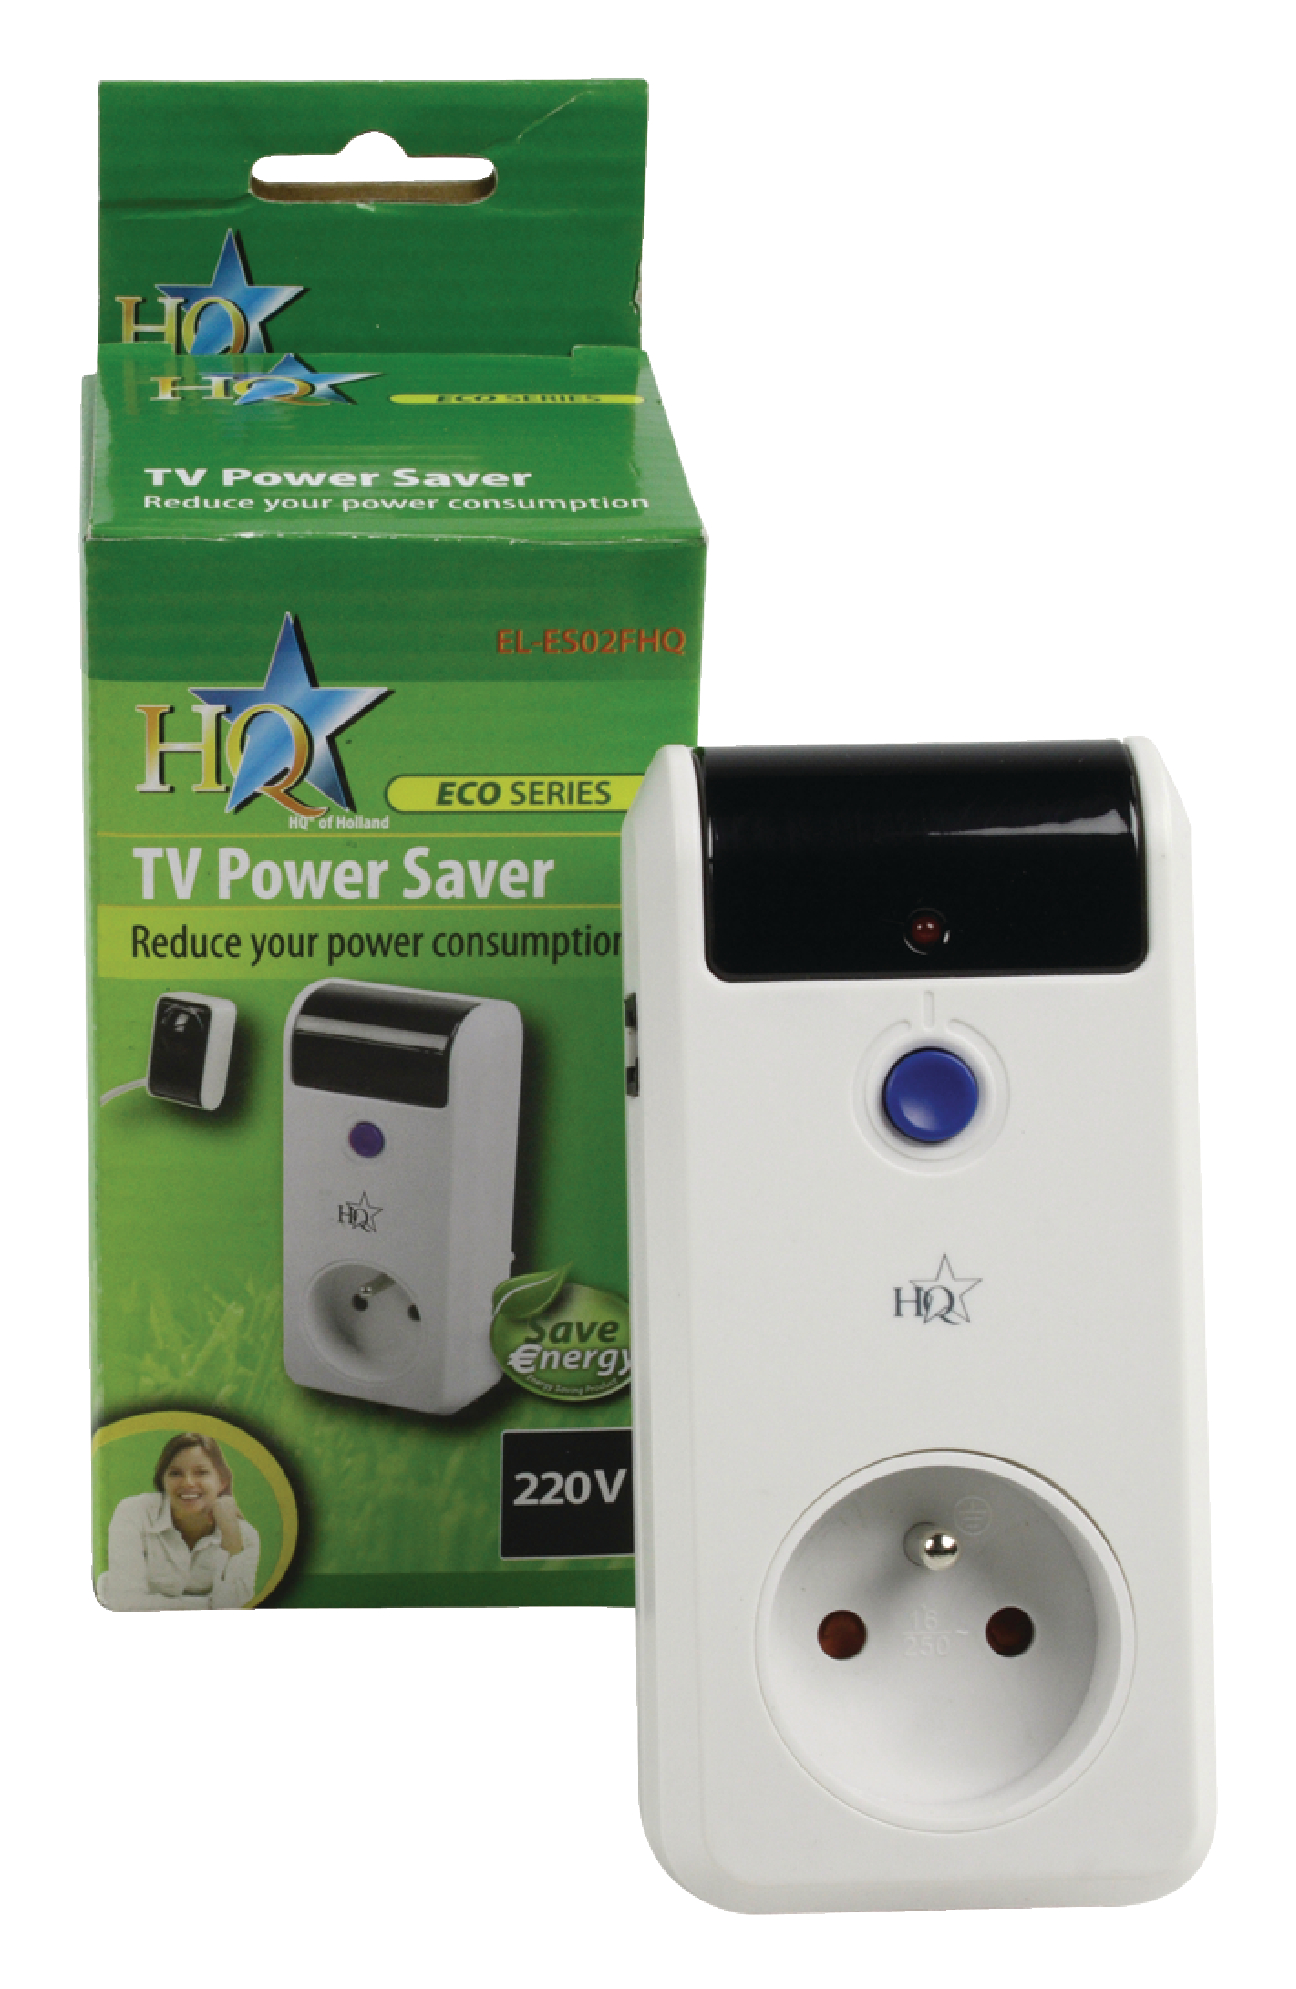 #819734 EL ES02FHQ HQ Power Saver AC 230 V 2400 W Electronic  Recommended 2697 Energy Saver Ac pics with 1296x1989 px on helpvideos.info - Air Conditioners, Air Coolers and more